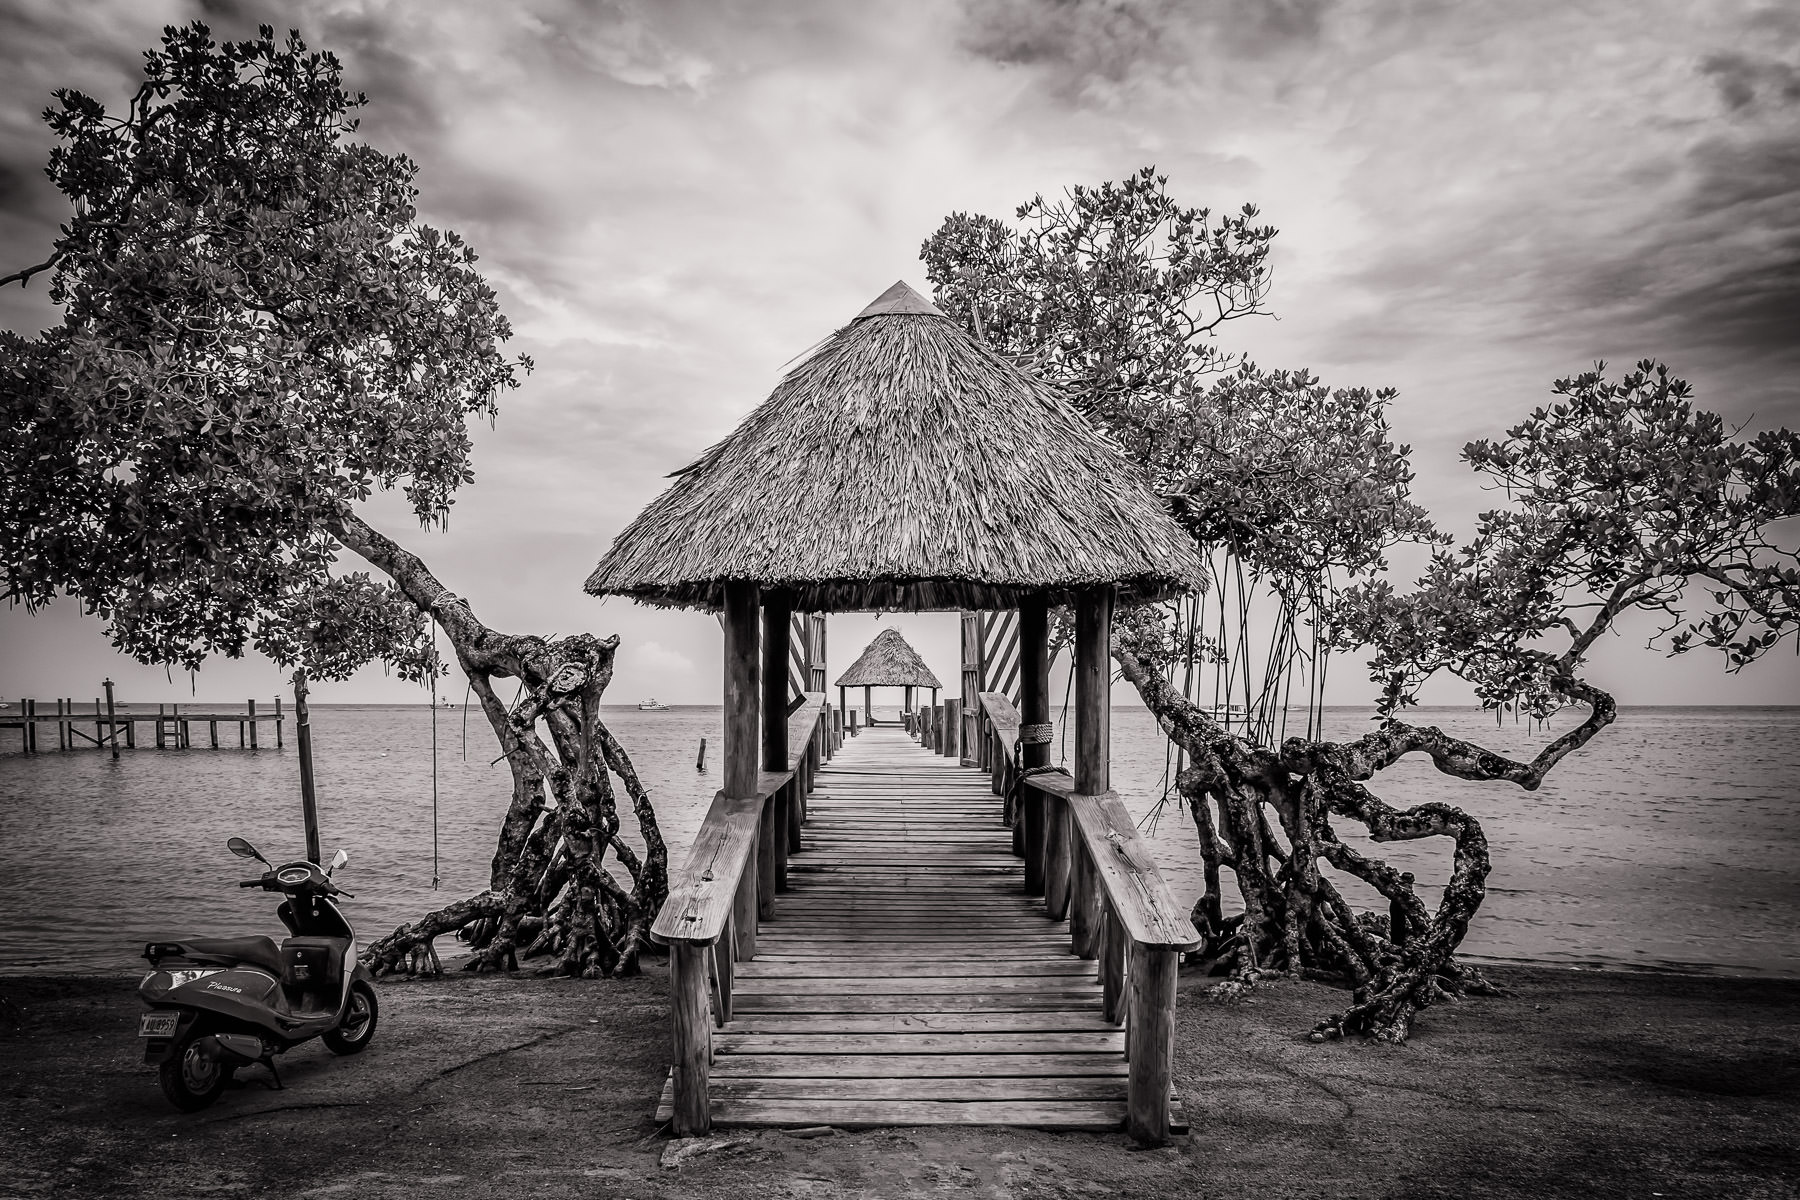 A scooter sits parked on the beach next to a pier on the island of Roatan, Honduras.